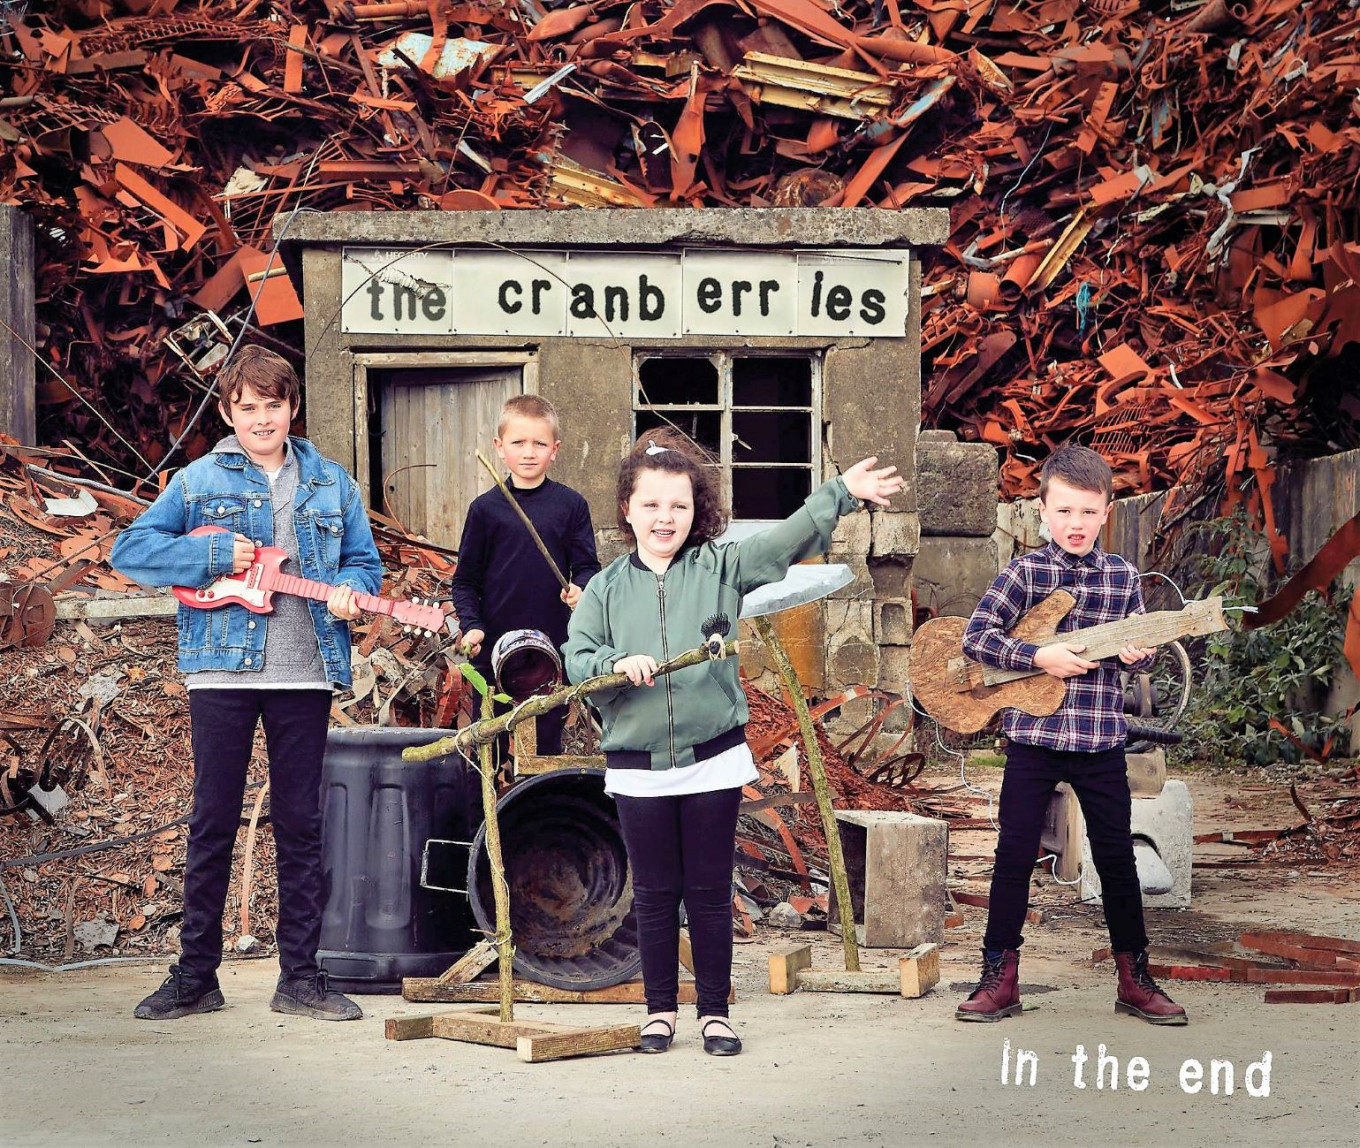 'In The End': The Cranberries go out with fitting melancholy